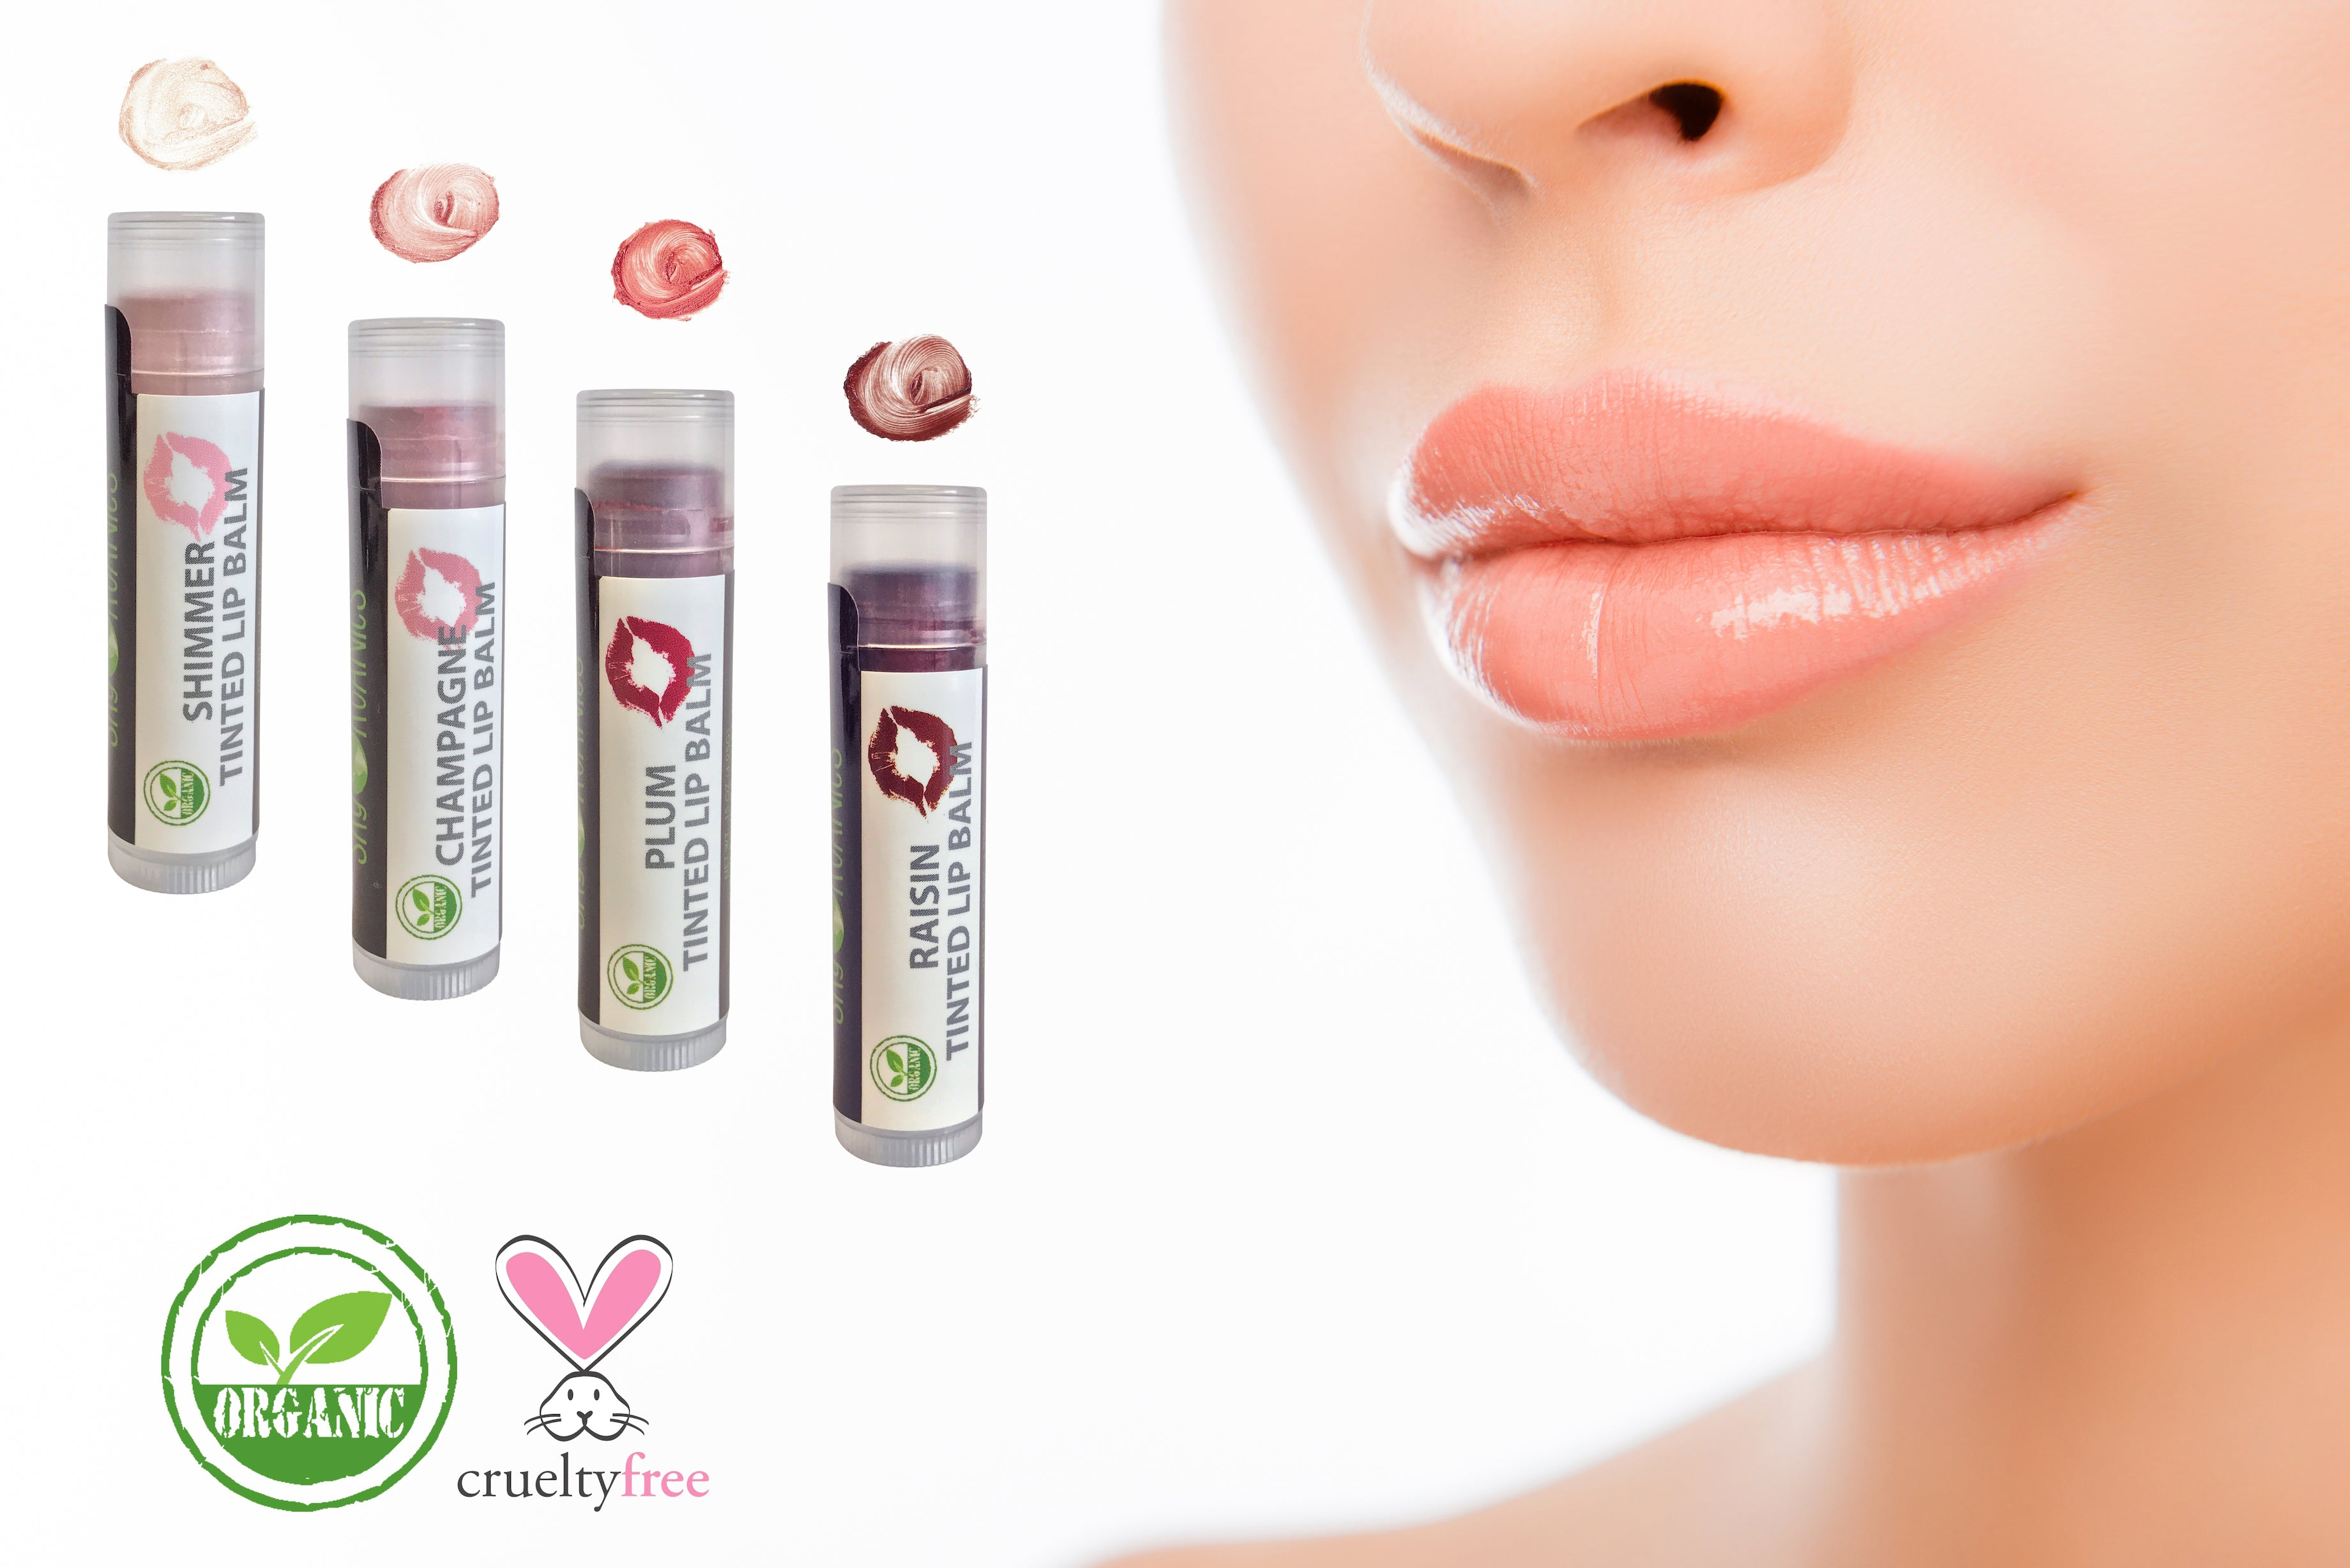 Organic Supple Lips Tinted Lip Balms - 4pk